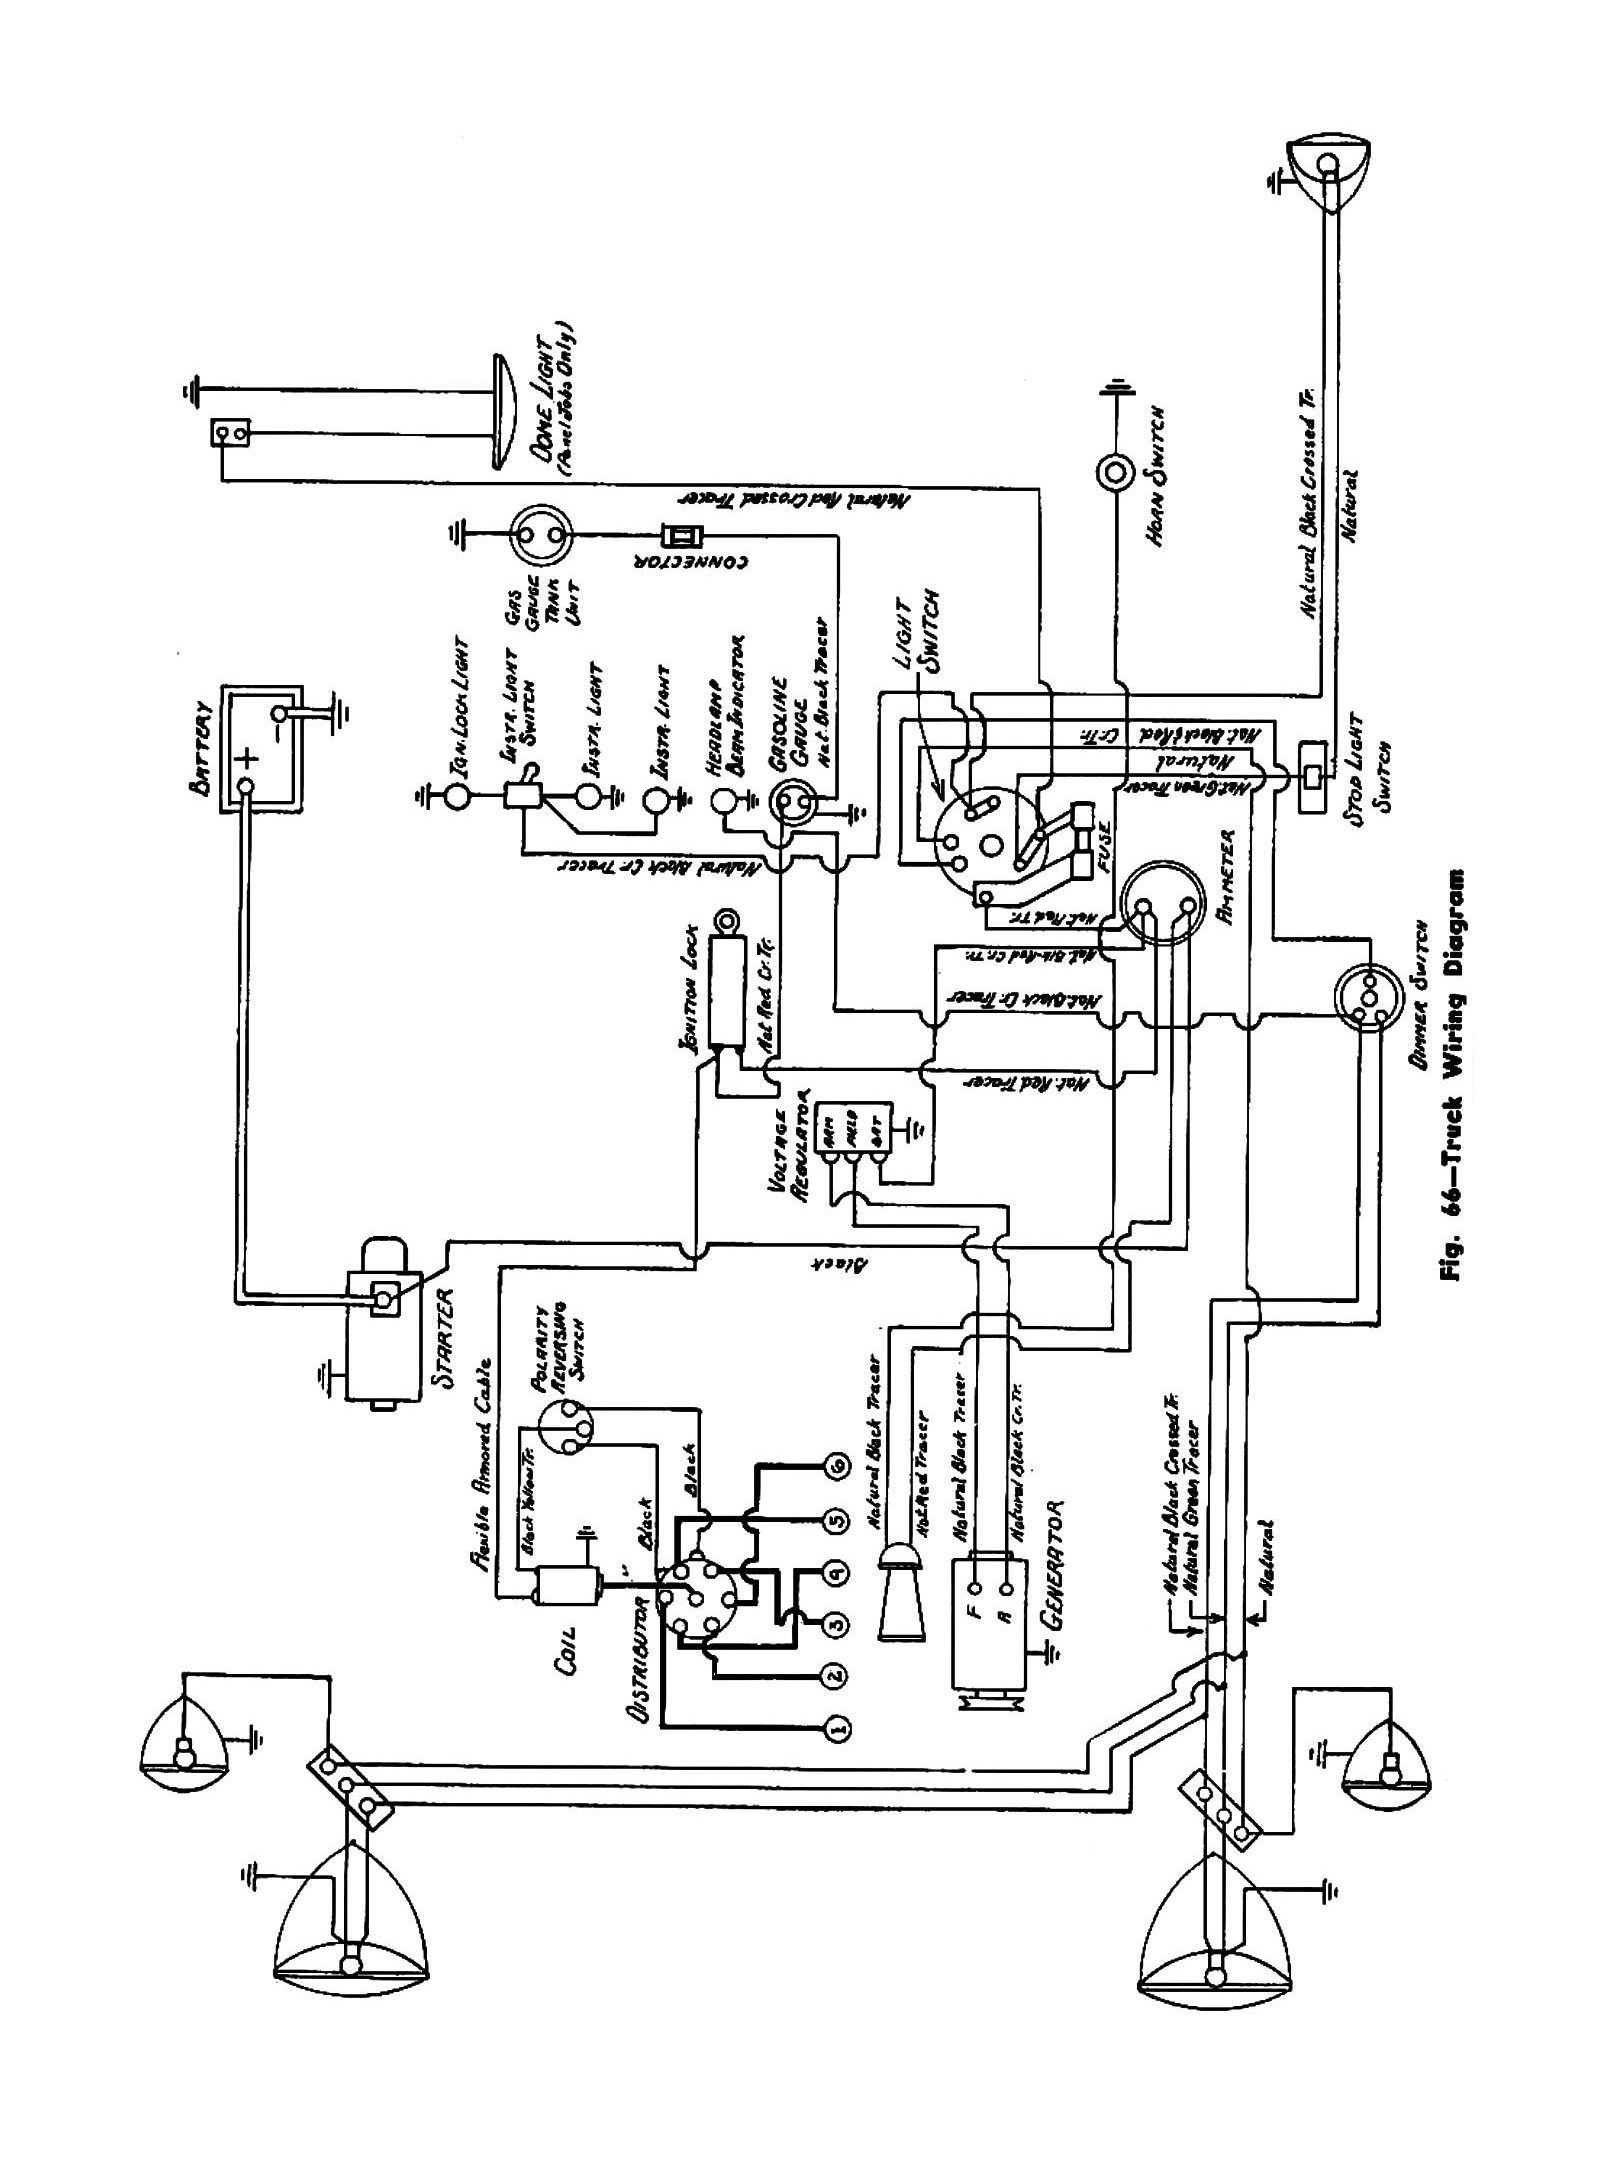 hight resolution of 1954 dodge wiring diagram wiring diagram page 1954 dodge truck wire schematic